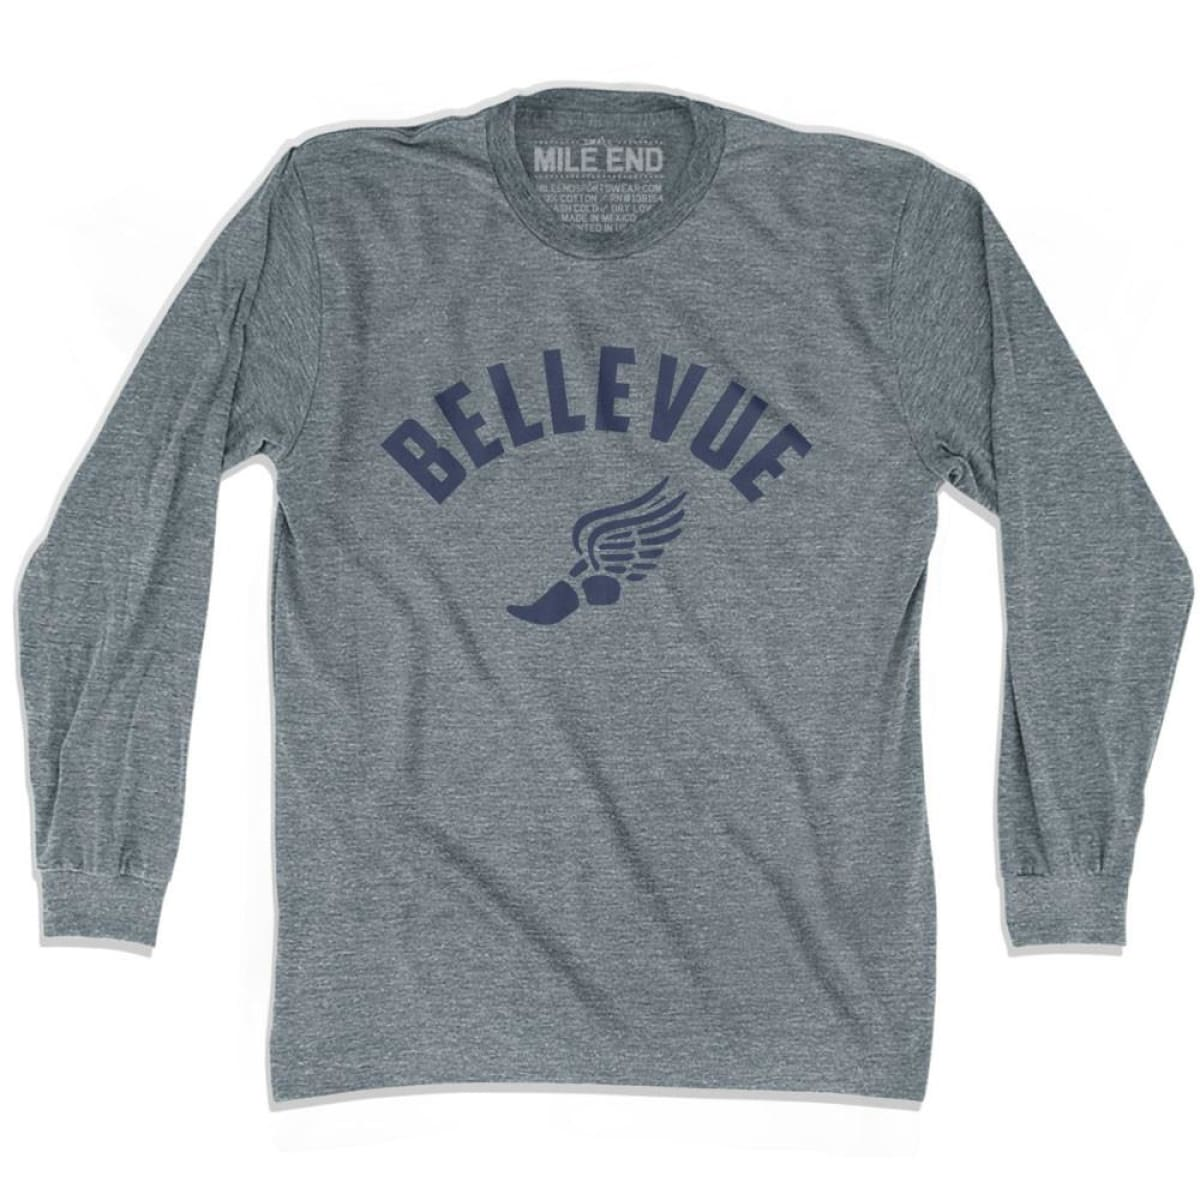 Bellevue Track Long Sleeve T-shirt - Athletic Grey / Adult X-Small - Mile End Track